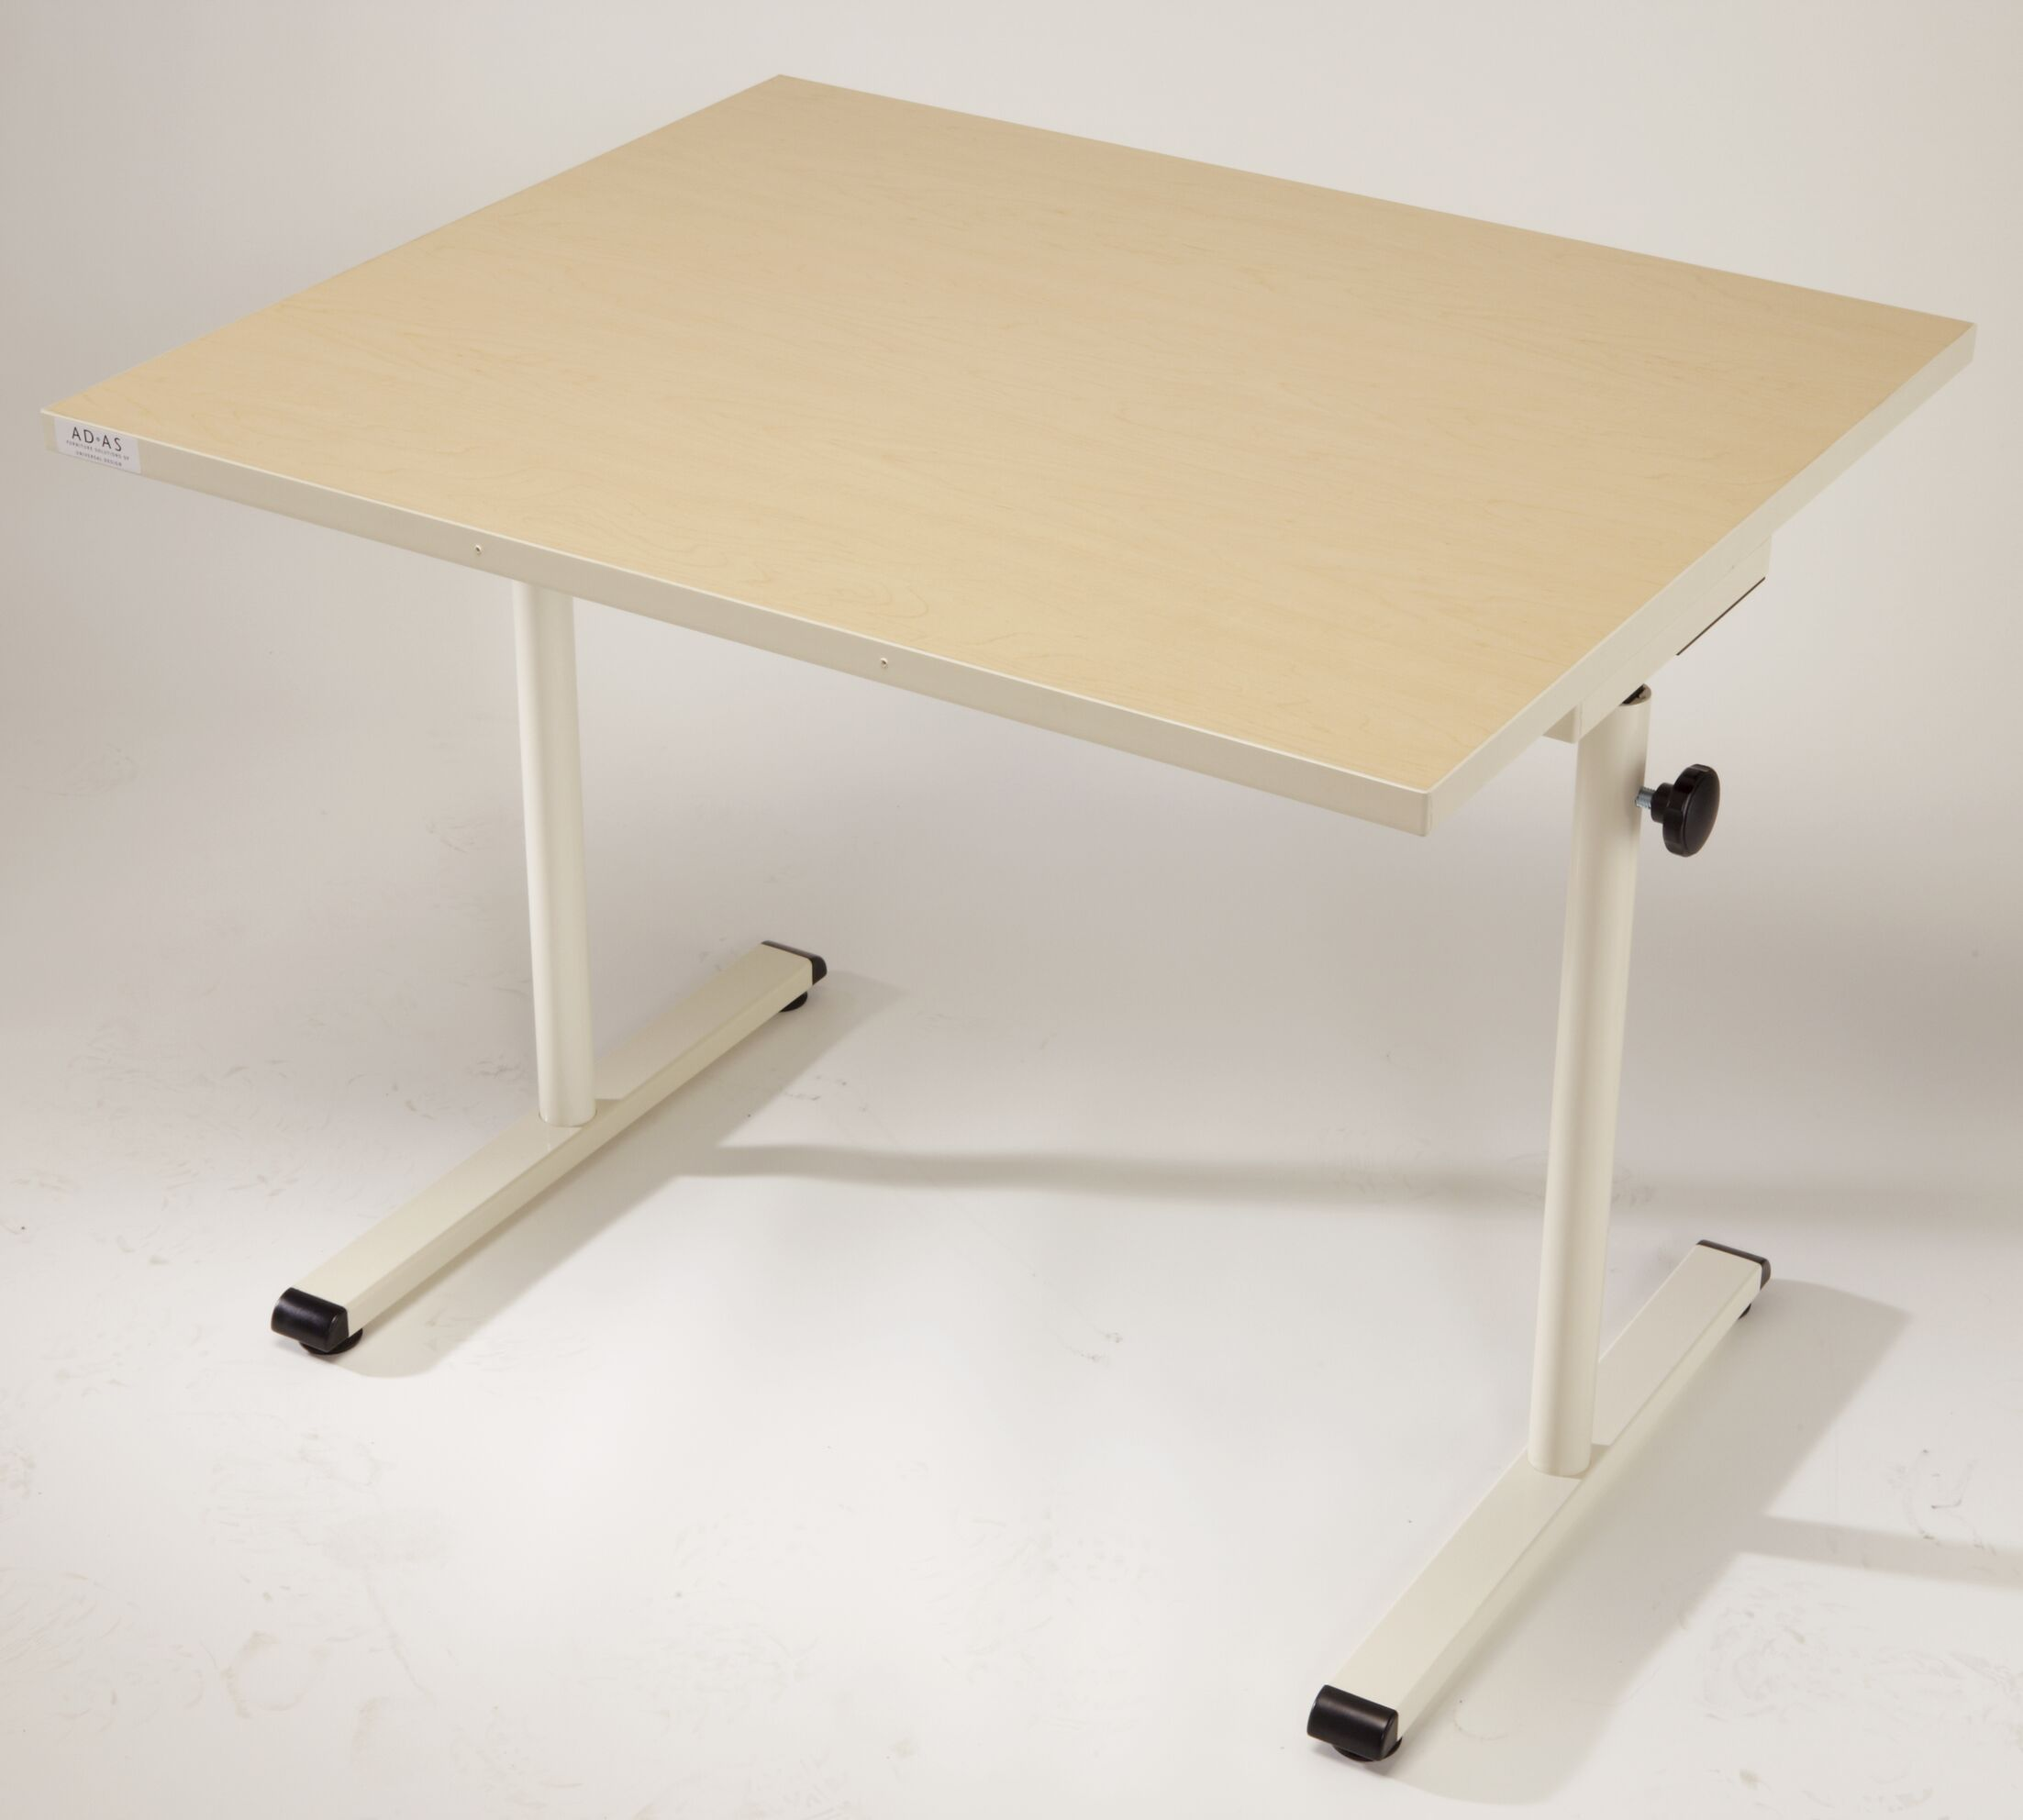 36'' W Height Adjustable Training Table Base Finish: Graphite Silver, Tabletop Finish: Digital Storm